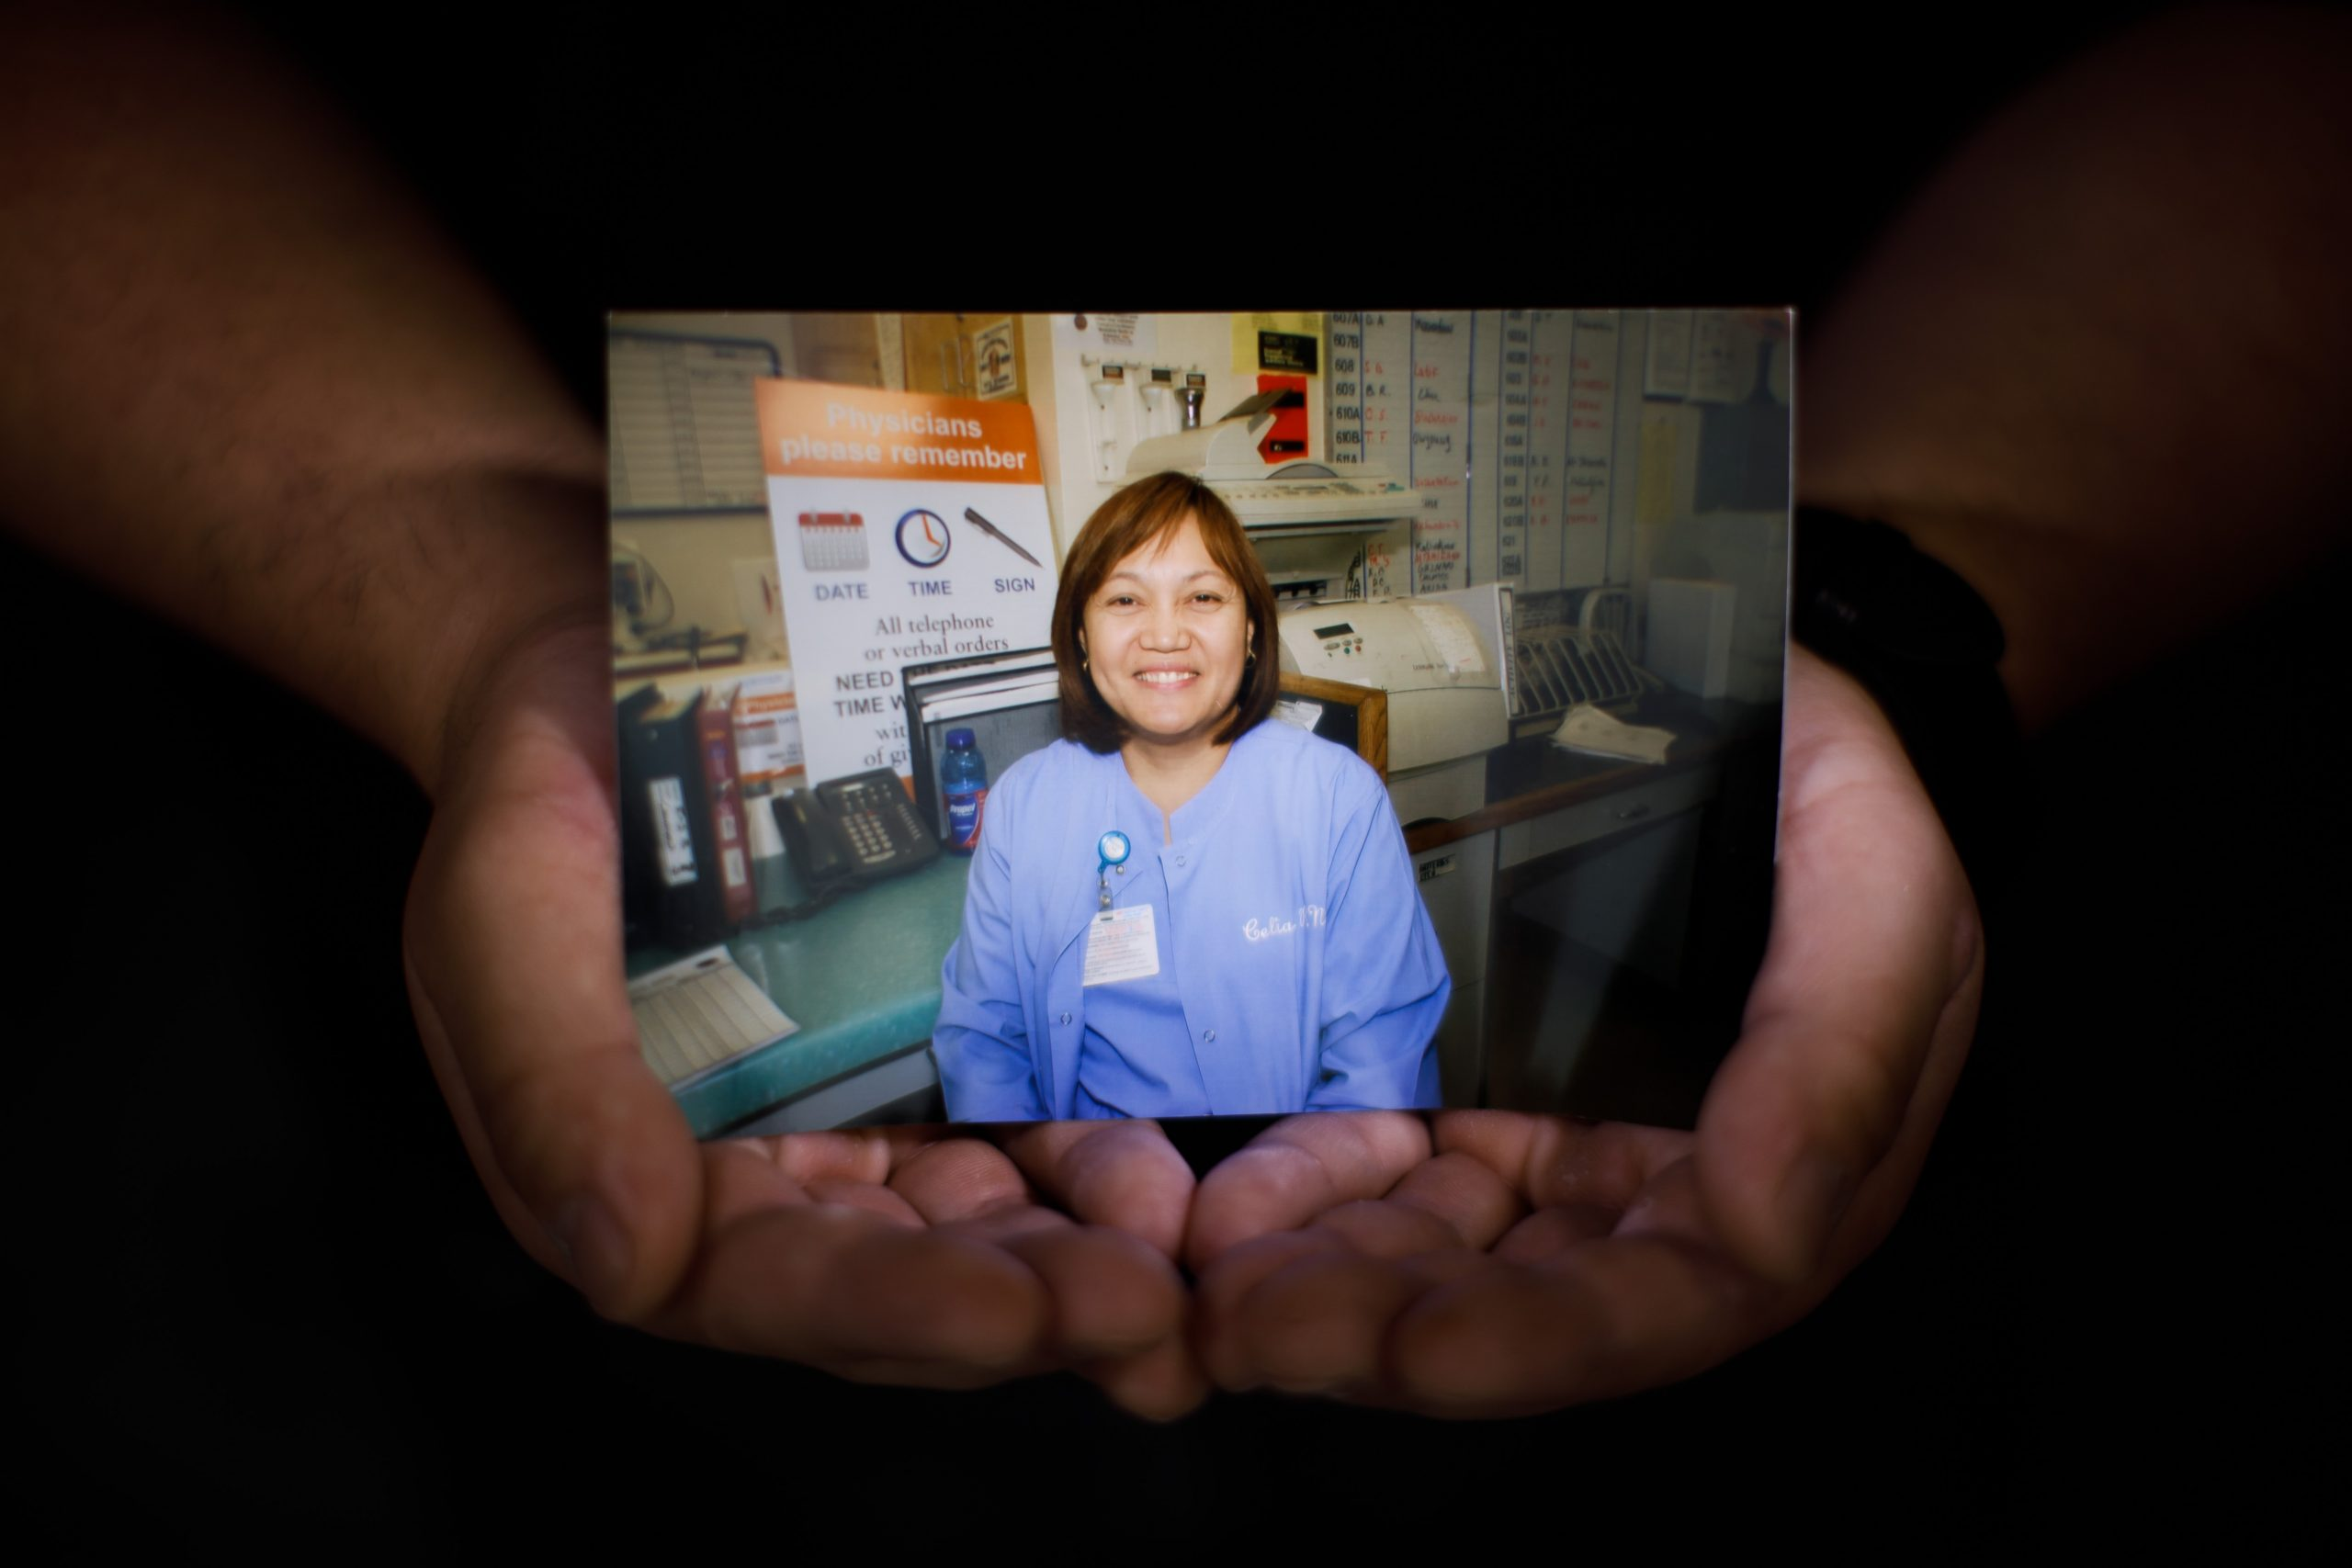 Filipino Americans make up 30% of COVID-19 deaths in US nurses